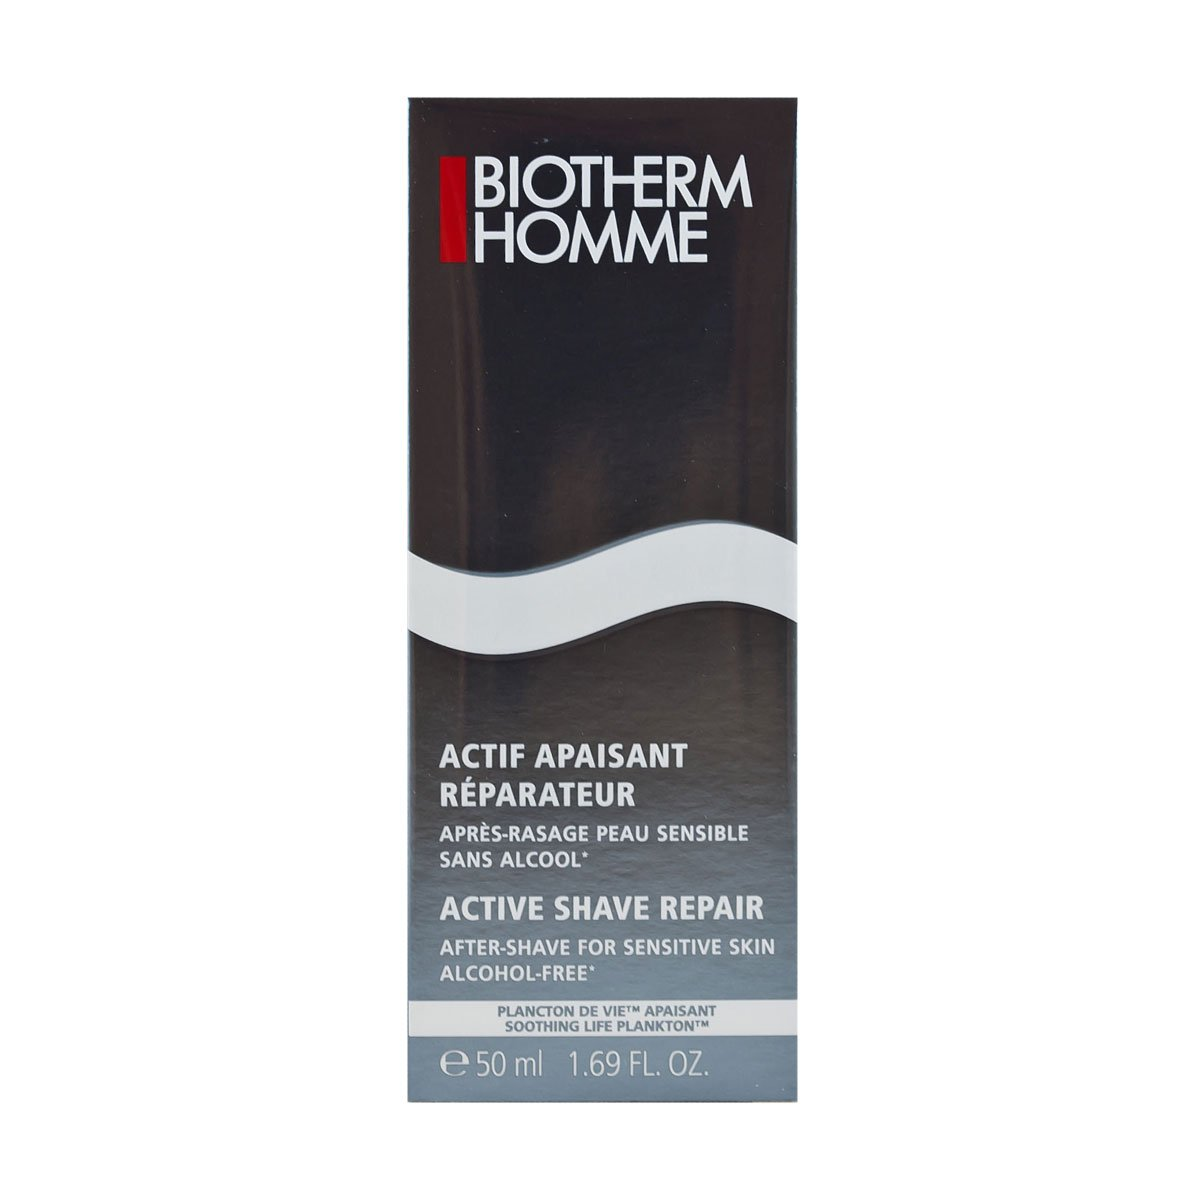 Biotherm Active Shave Repair 50ml 3367729519013 4129_-50 Cosmetics and Fragrances male grooming